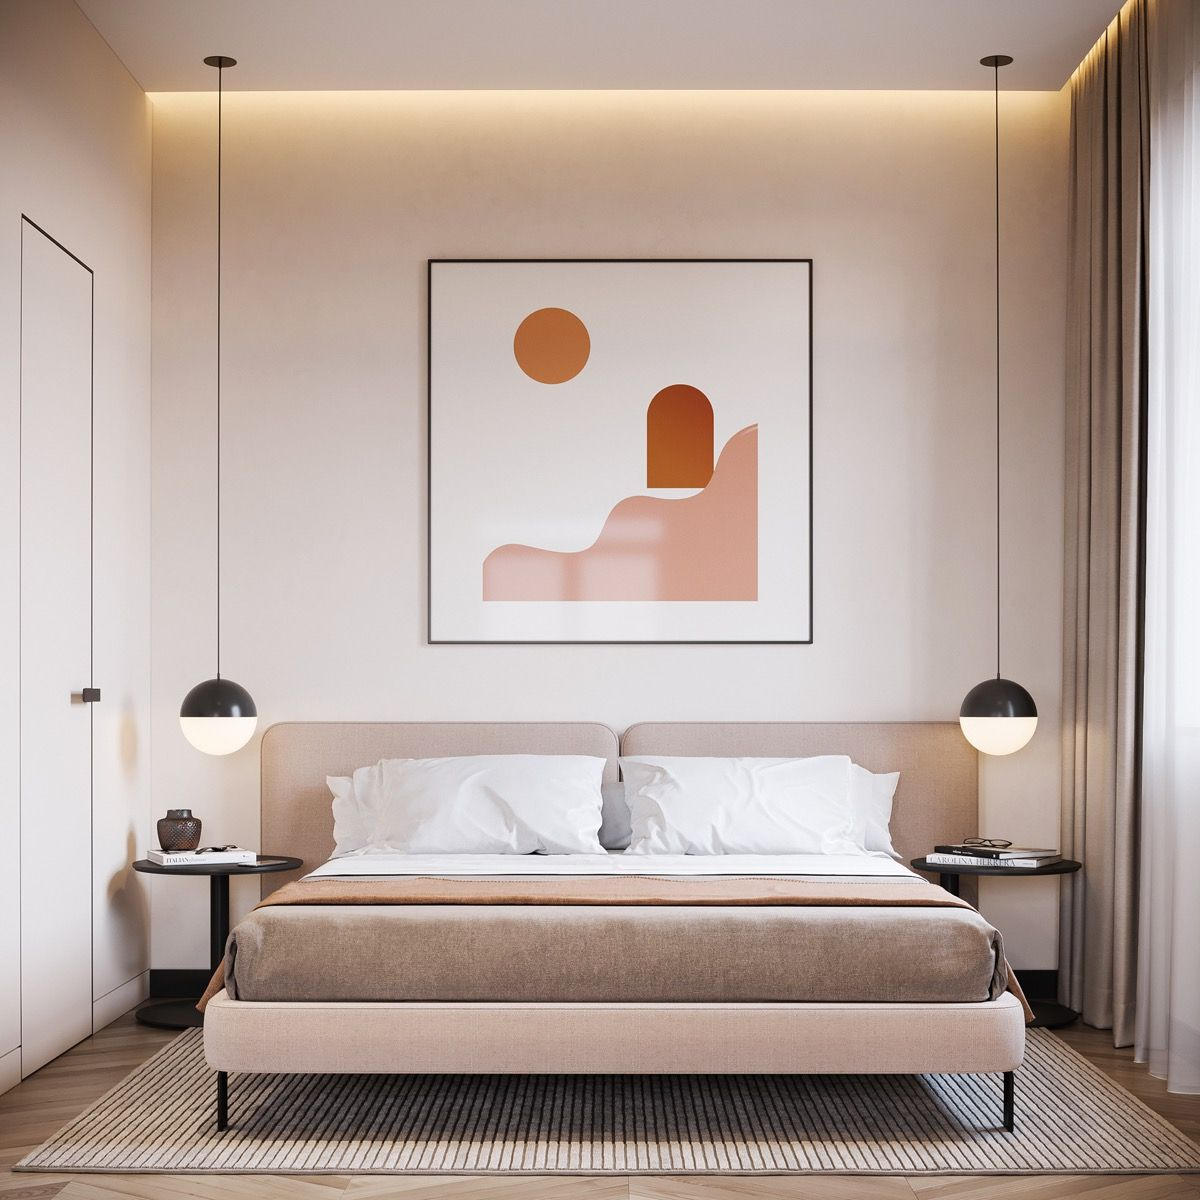 How To Use Terrazzo In Interior Design 4 Examples Bedroom Interior Home Decor Bedroom House Interior Interior home design bedroom